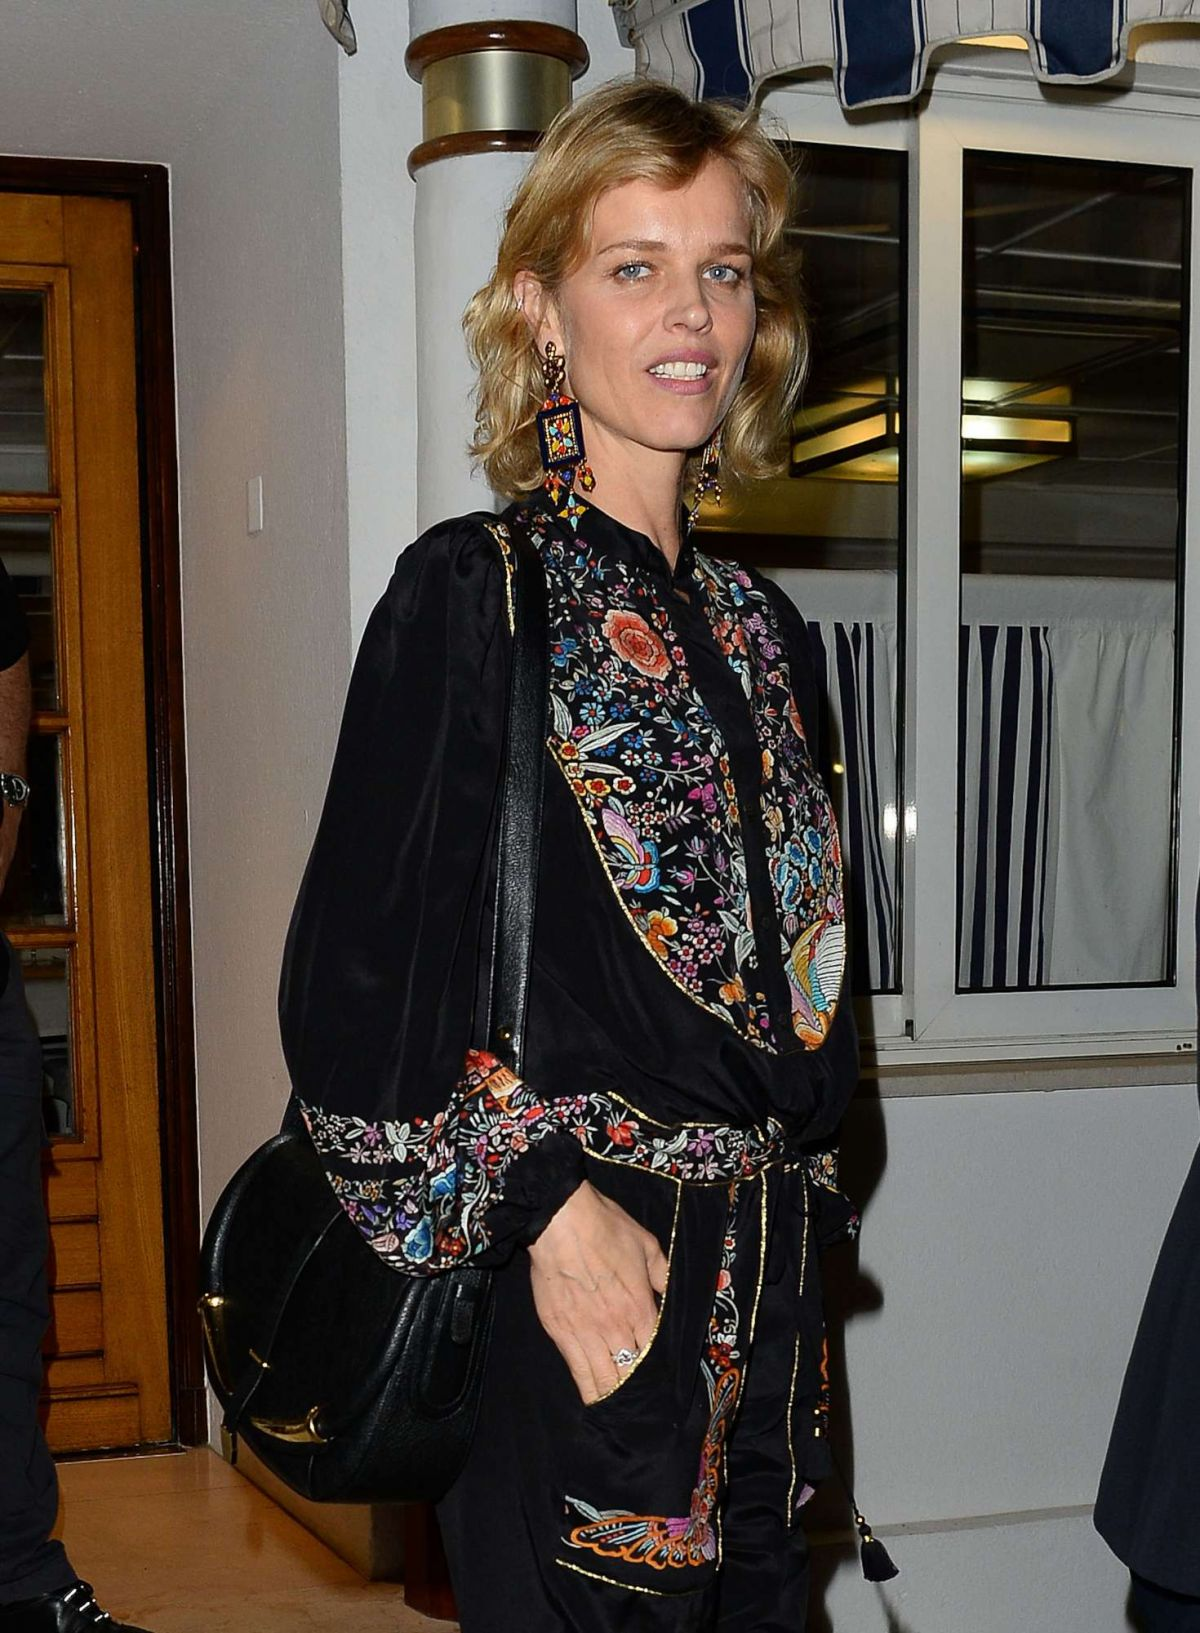 EVA HERZIGOVA Out for Dinner at Tetou Restaurant in Cannes 05/16/2017